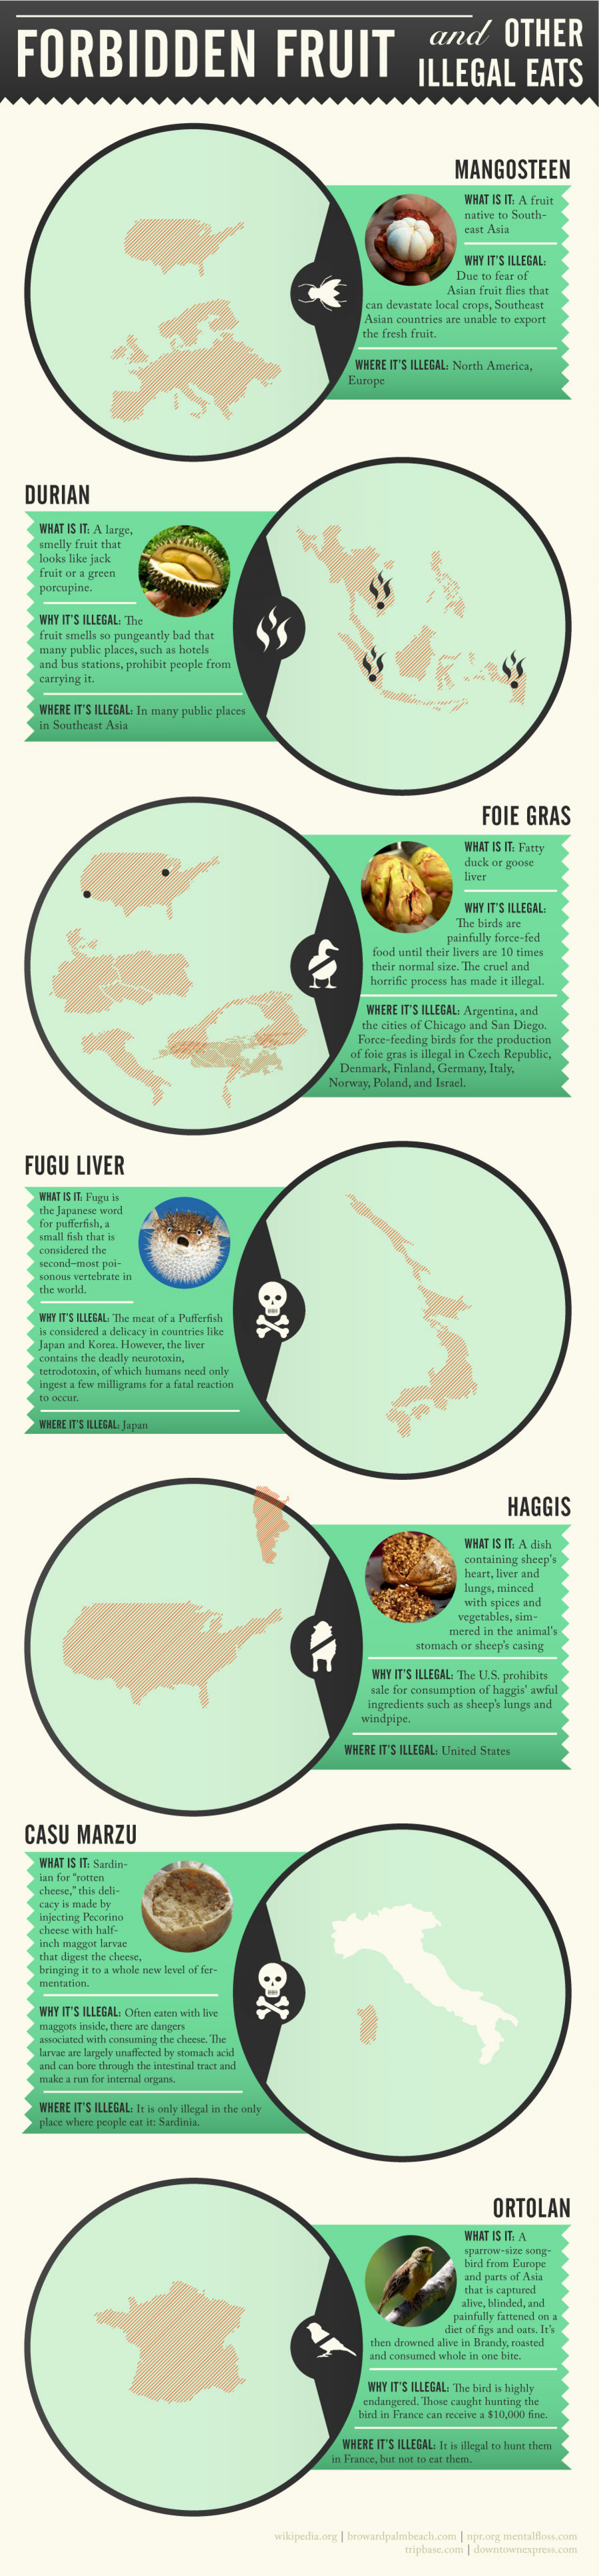 FORBIDDEN FRUIT and OTHER ILLEGAL EATS Infographic